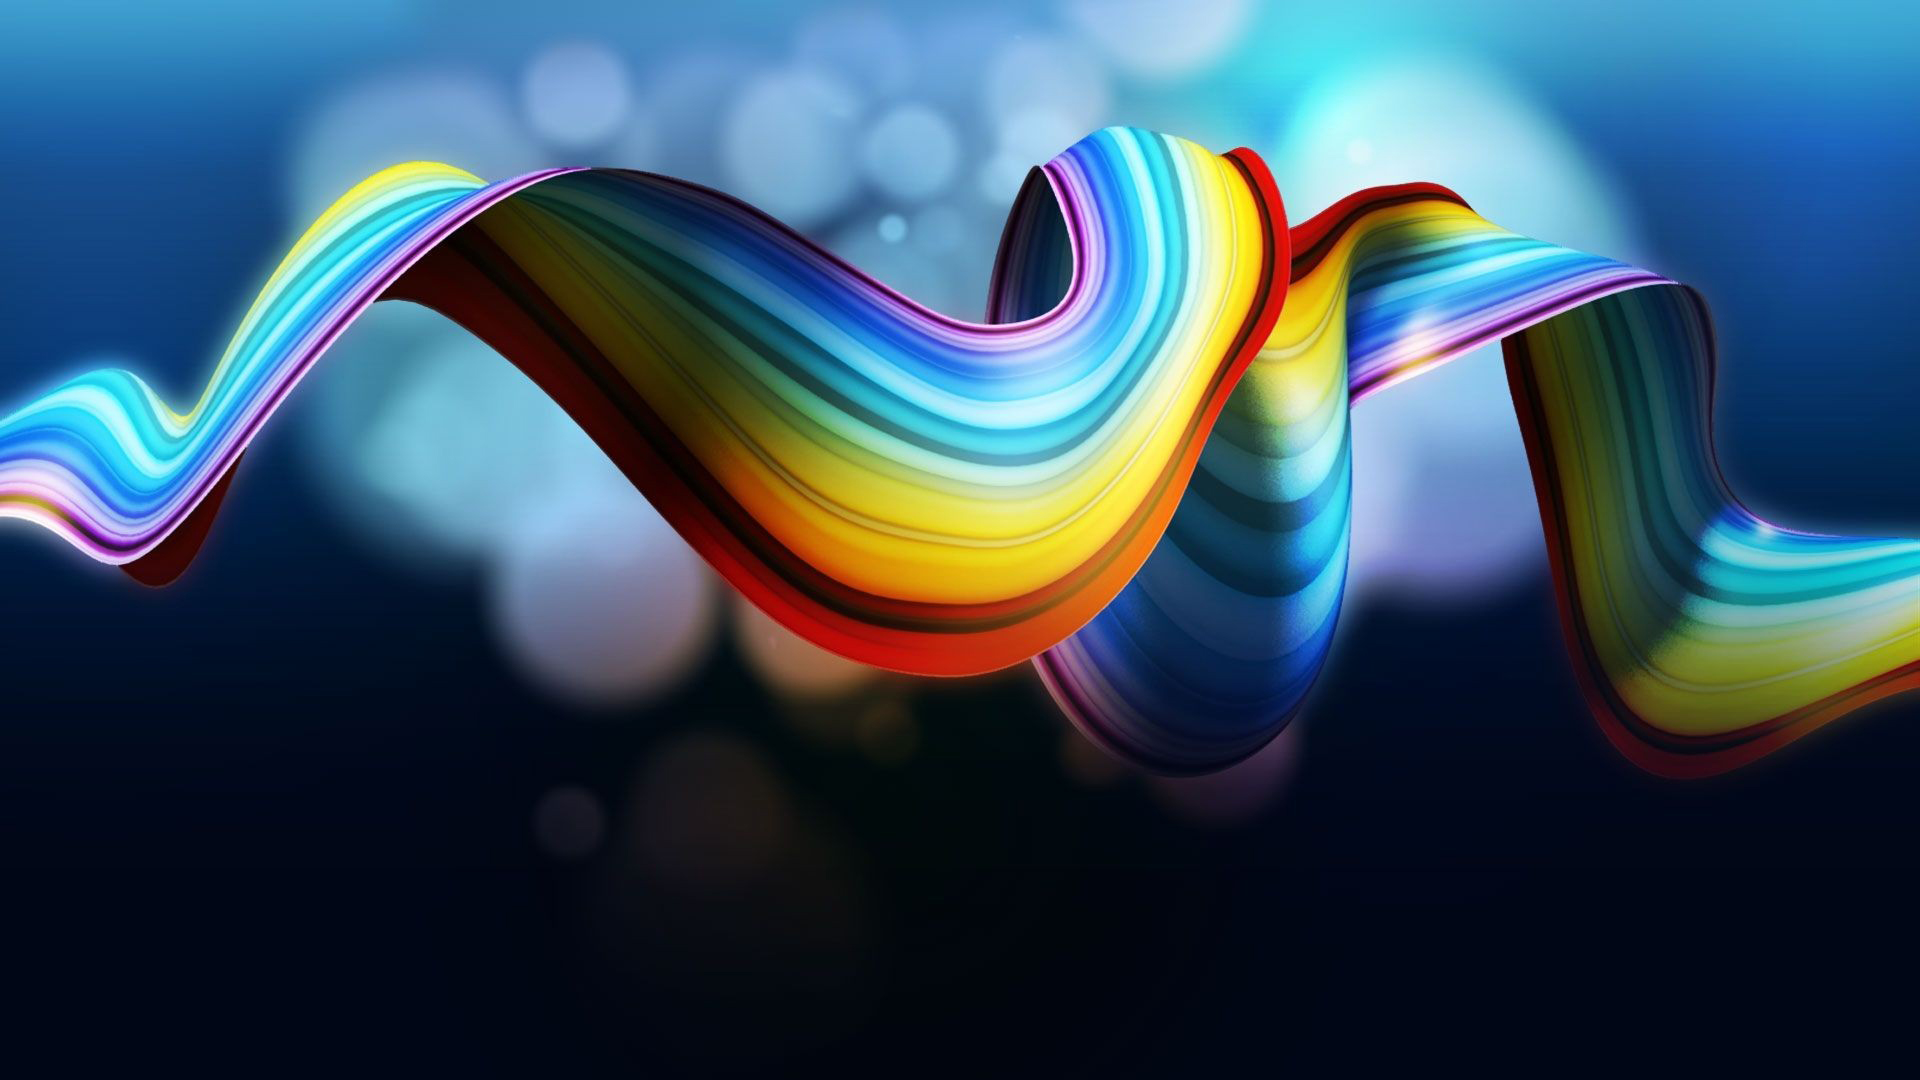 Beautiful-Rainbows-wallpaper-wpc5802684